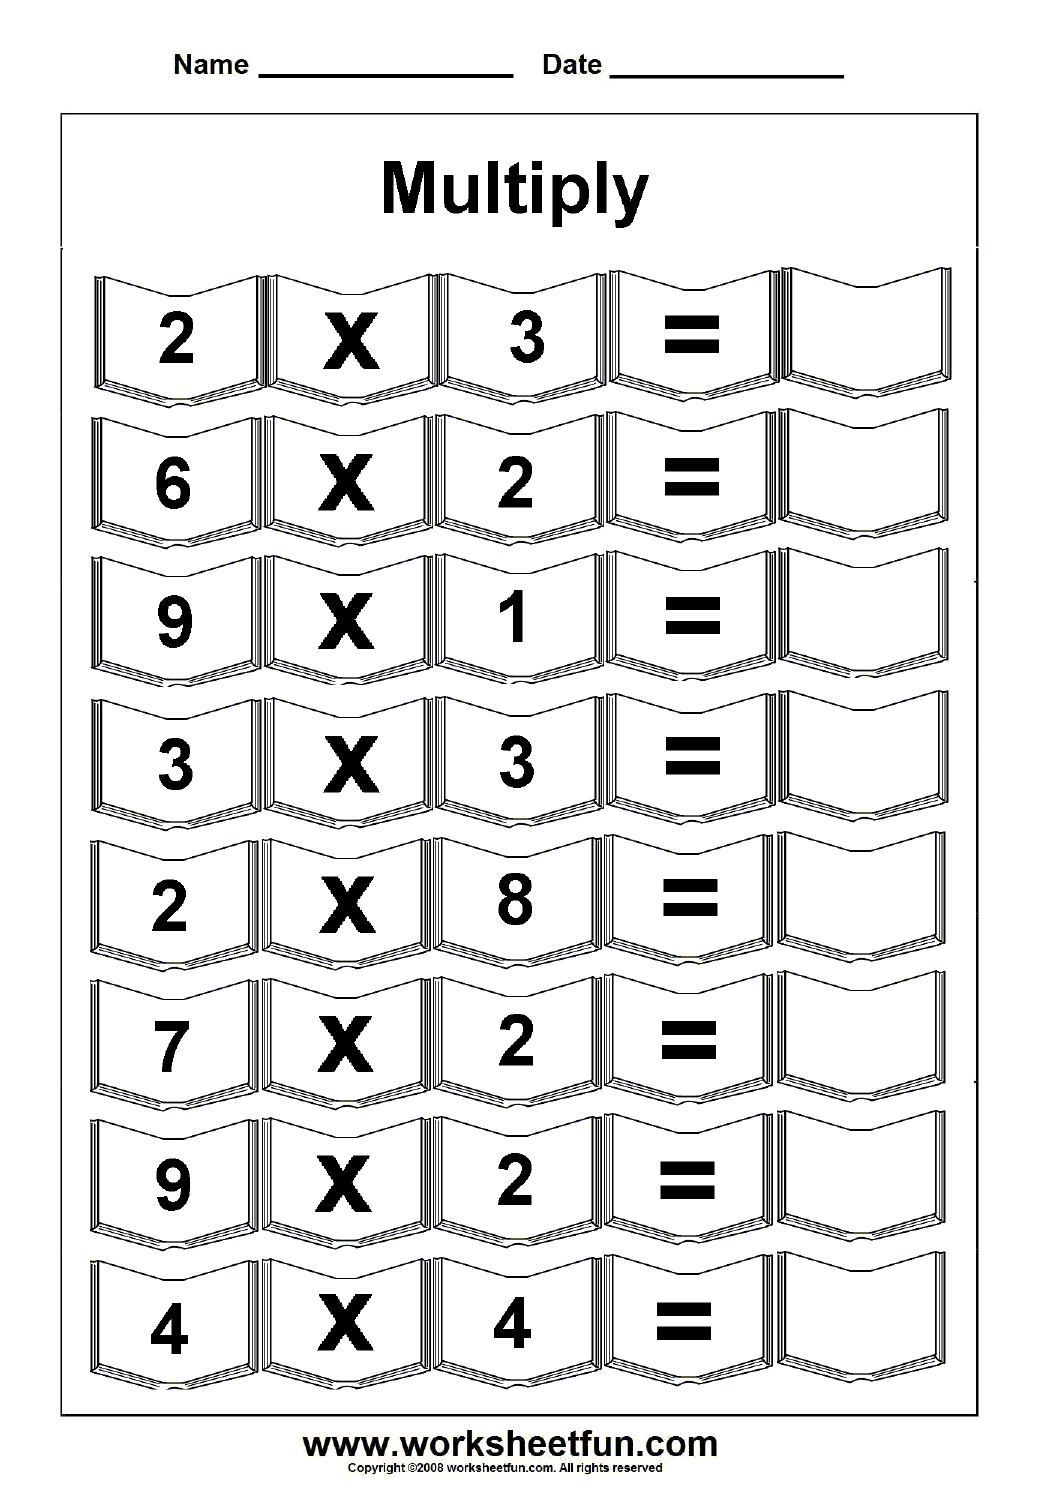 Multiplication 5 Worksheets Free Printable Worksheets Worksheetfun